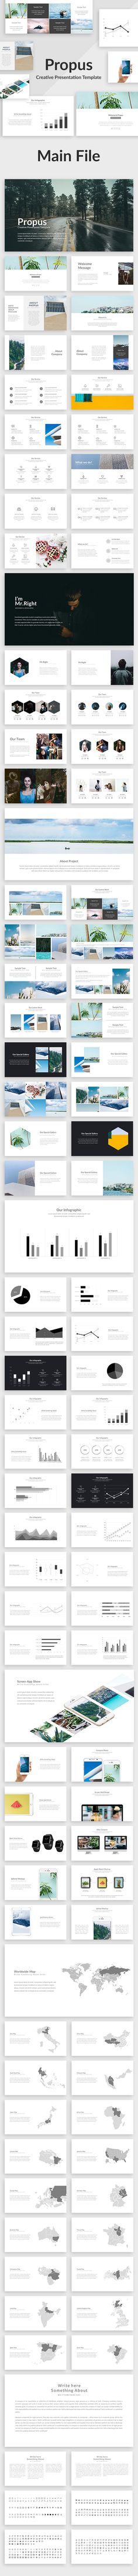 Propus - Creative Keynote Template - Creative #Keynote Templates Download here: https://graphicriver.net/item/propus-creative-keynote-template/19684125?ref=alena994